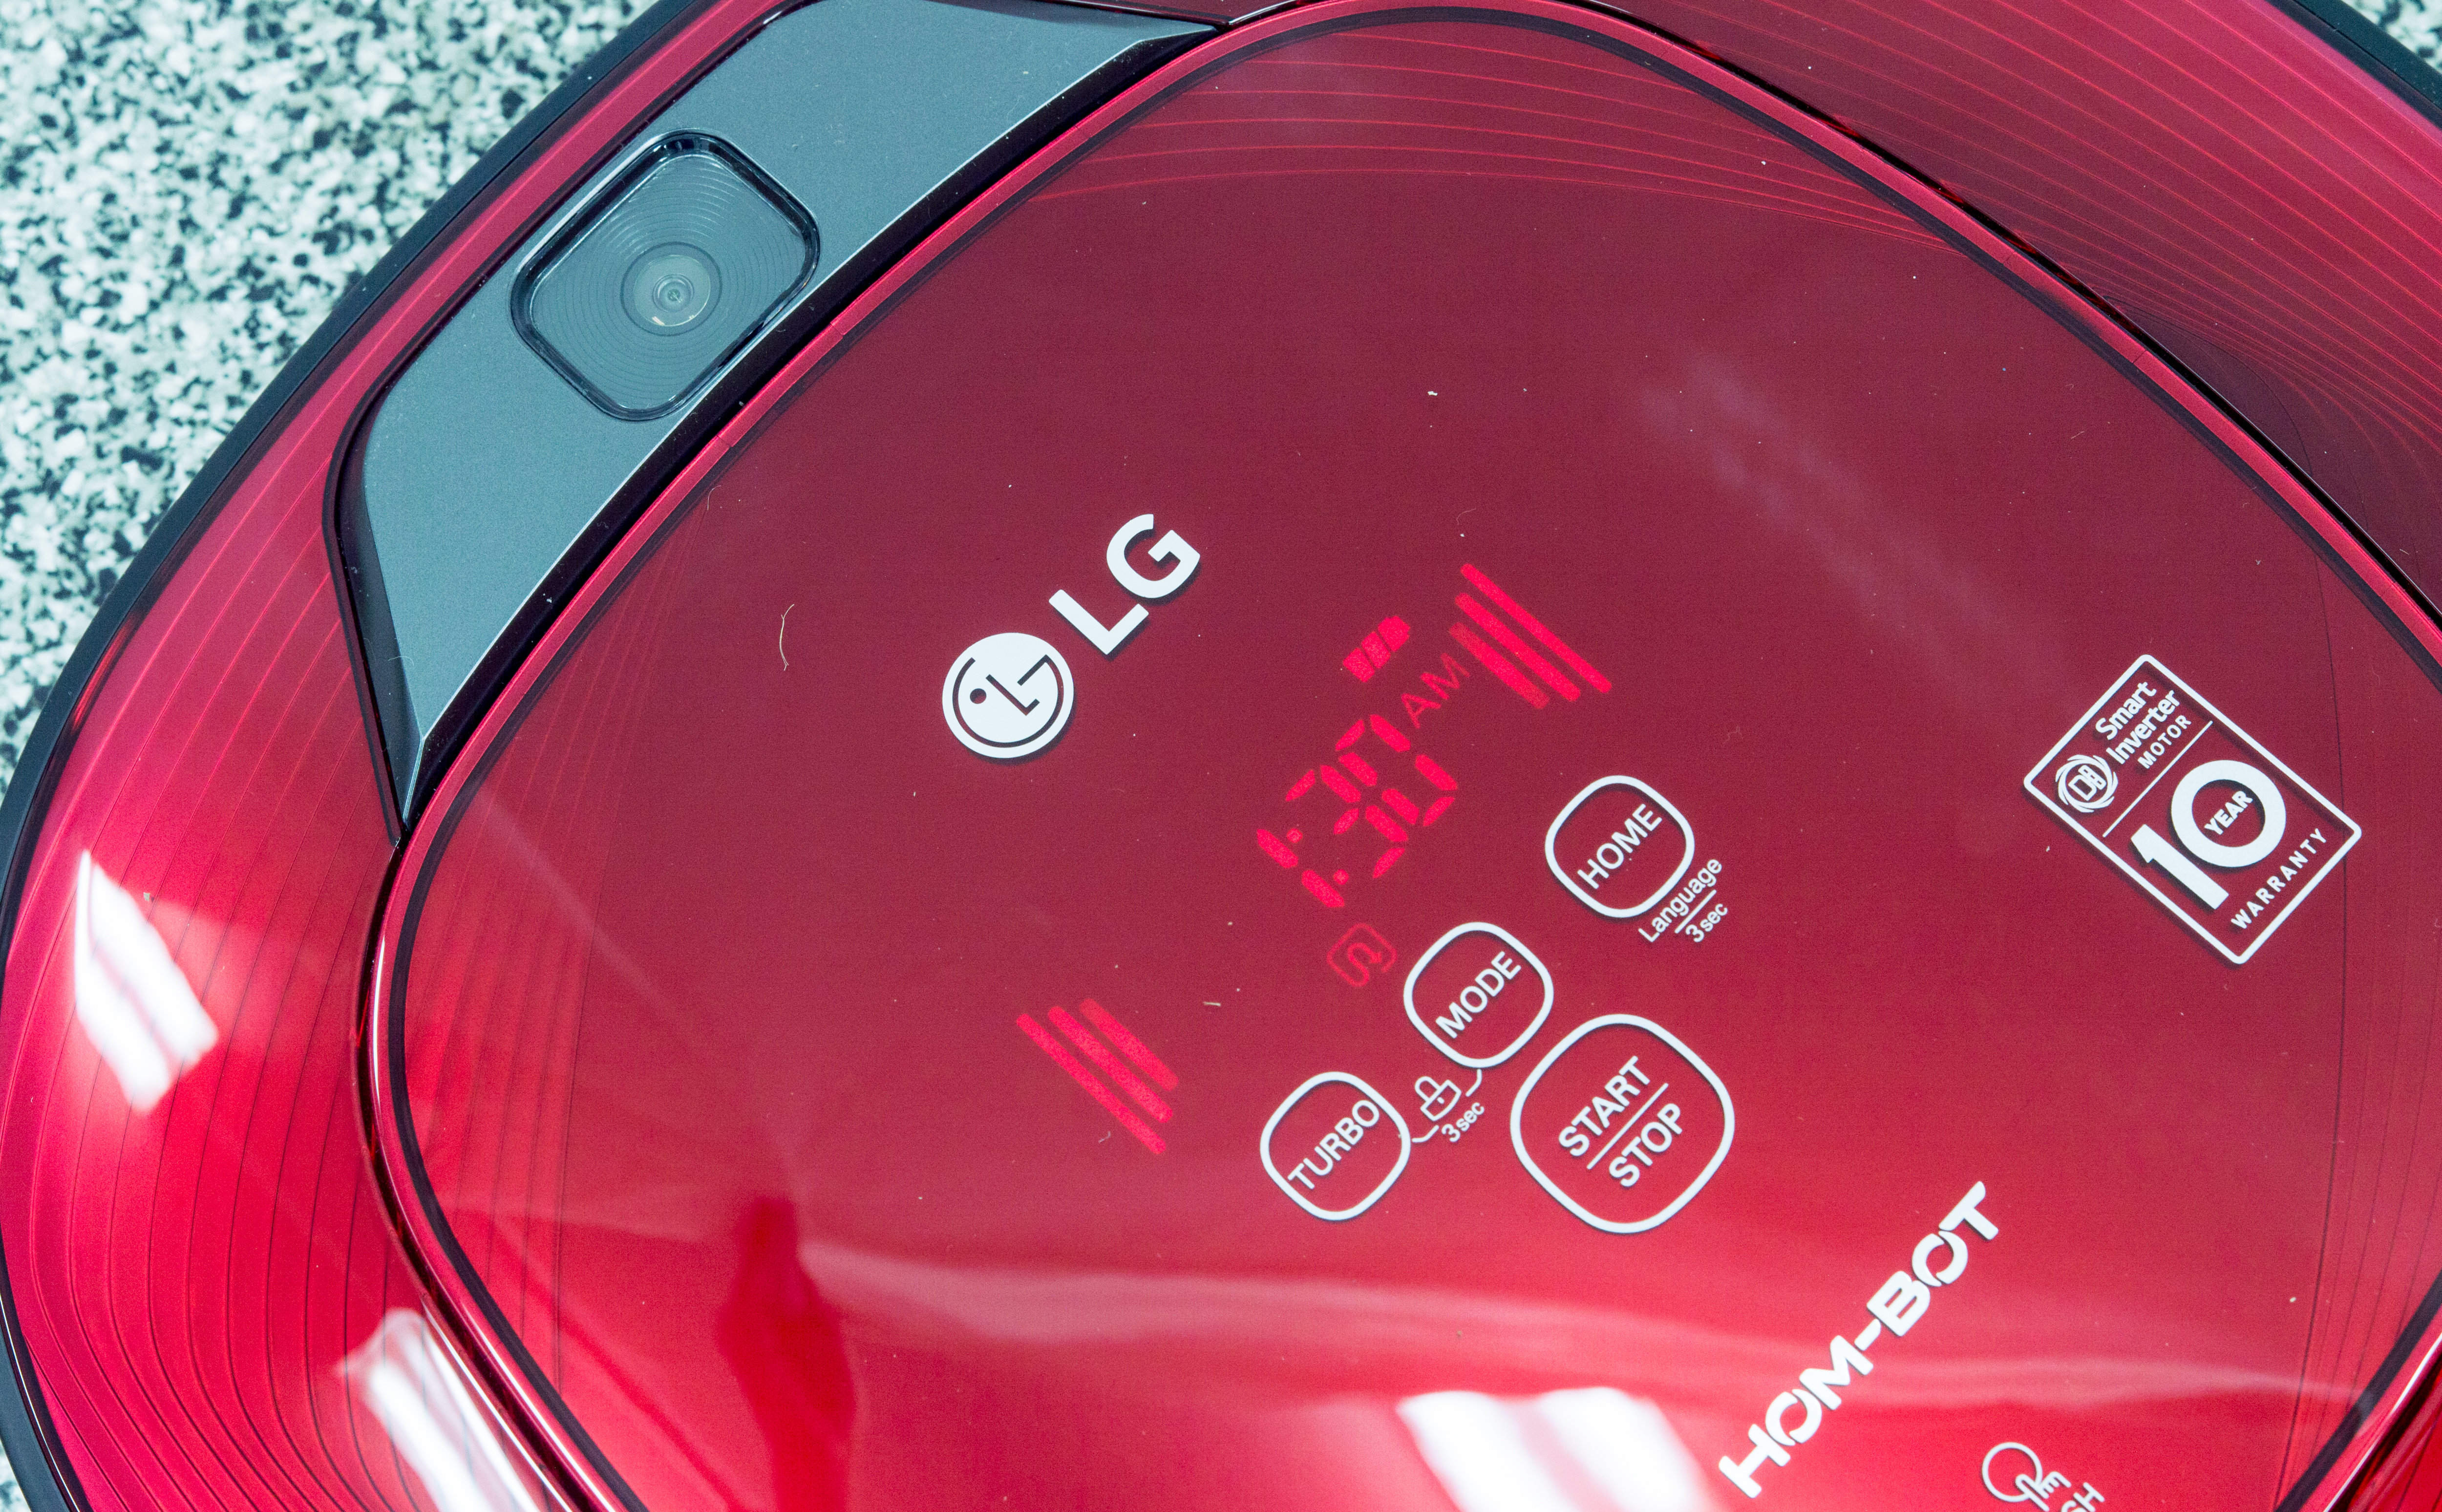 The LG Hom-Bot's controls are easy to read while not clashing with the design.